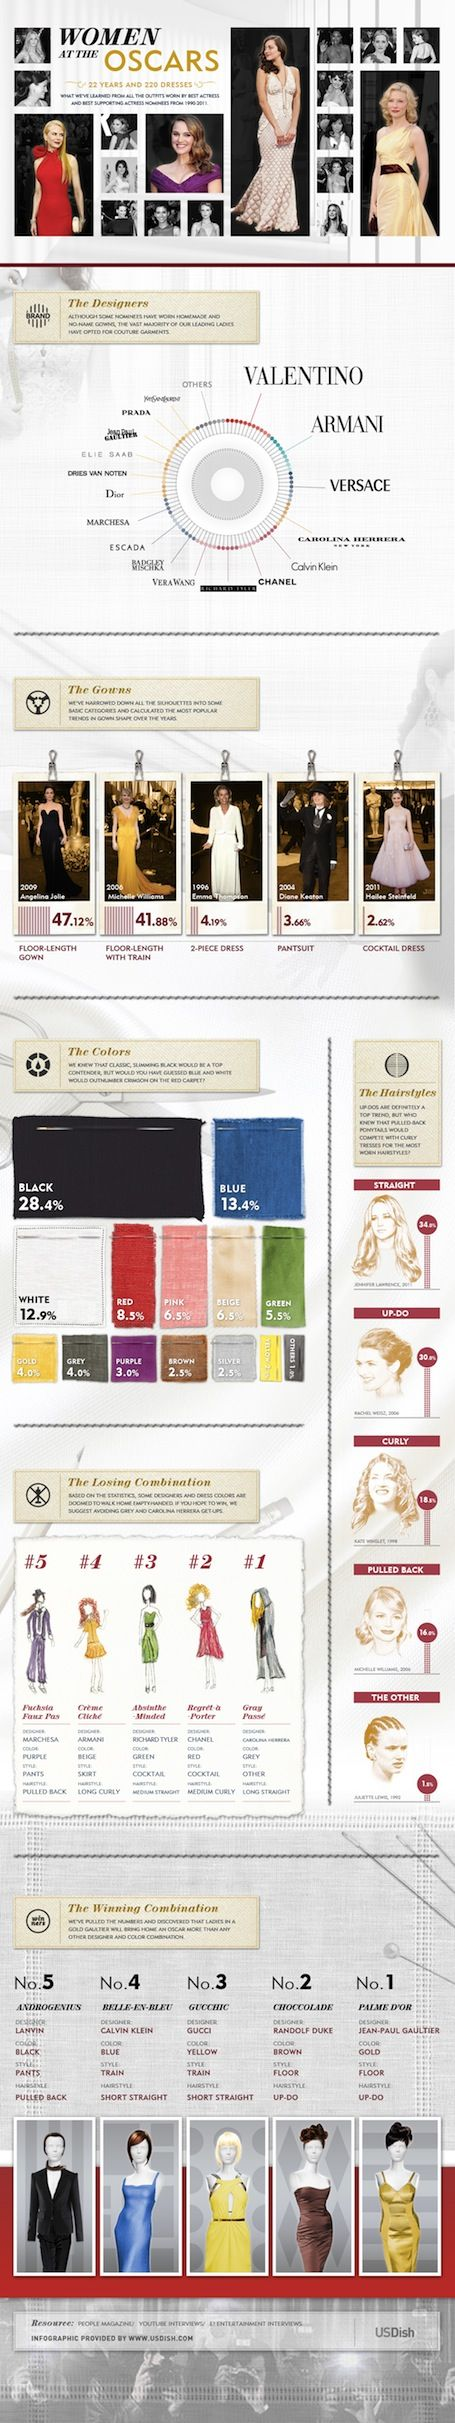 10 FASHION INFOGRAPHICS TO GIVE US A NEW STYLE SENSE  (some far better than others)